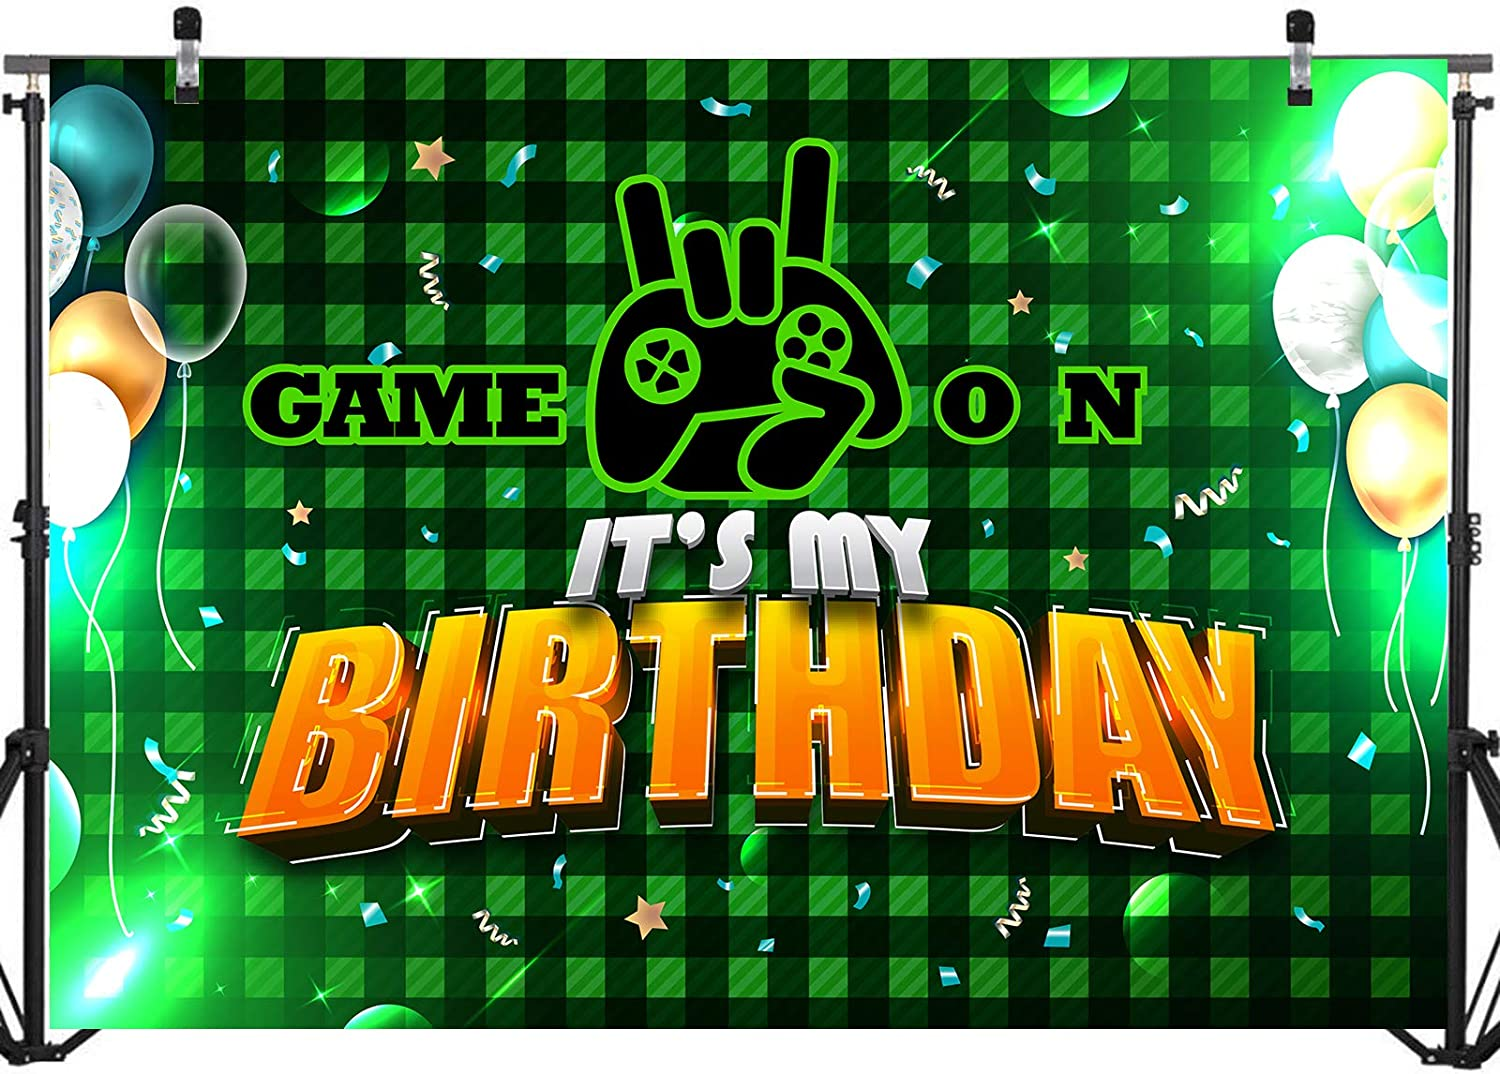 Gaming Birthday Baby Shower Party Cake Table Decorations Supplies for Boys 71/x 49/inch Happy Birthday Game on Backdrop Background Banner Wall Decorations Video Game Backdrop for Birthday Party